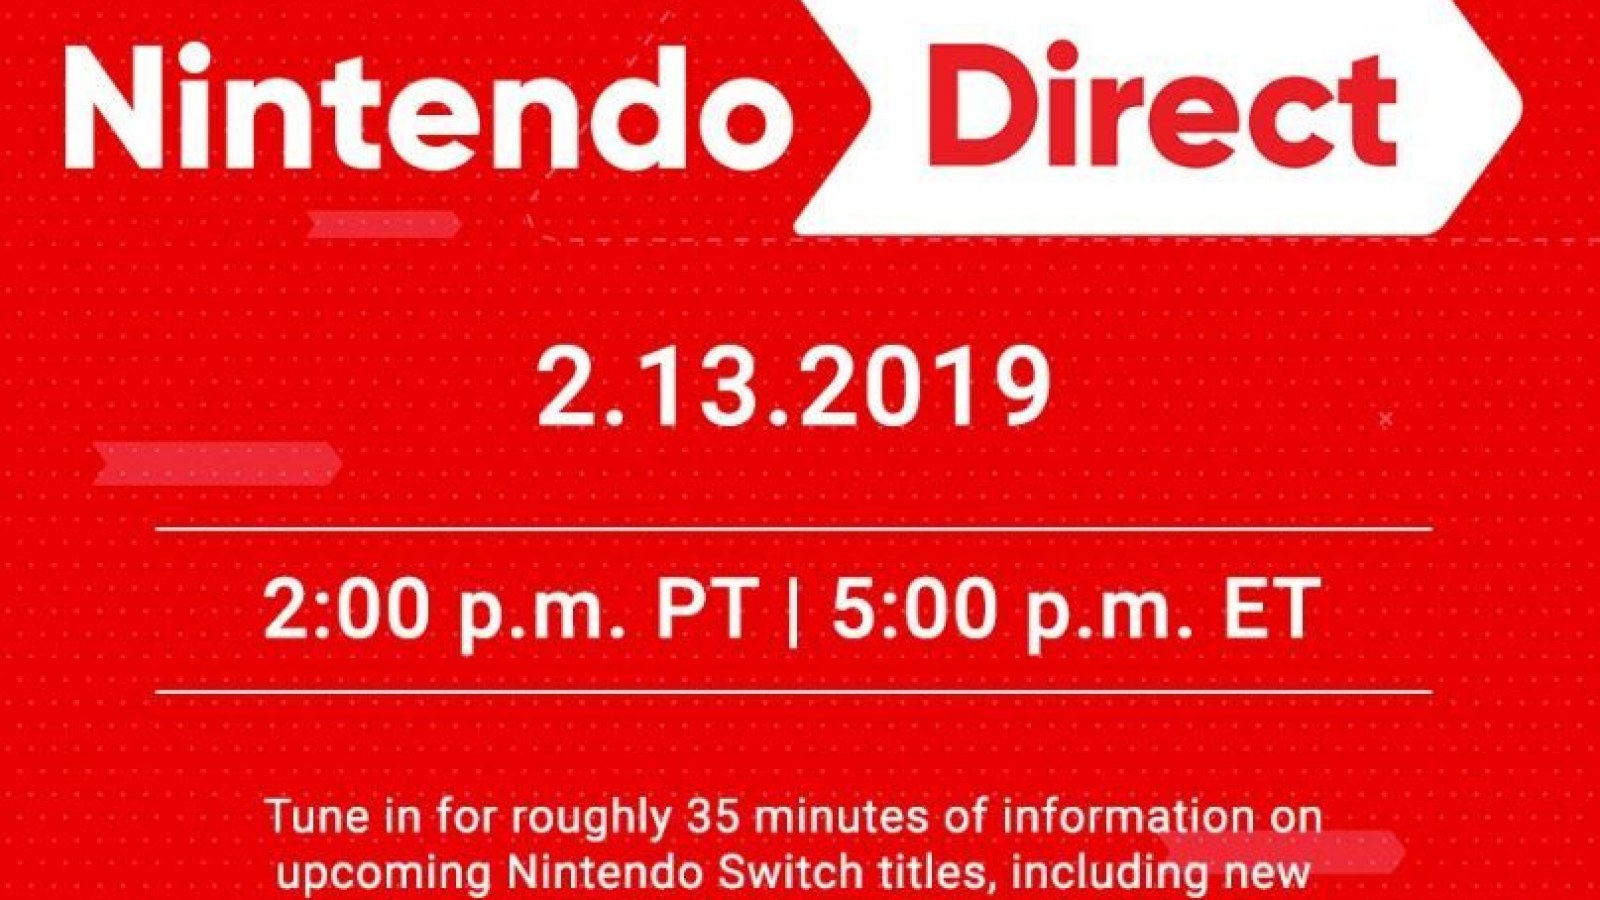 Nintendo Direct Confirmed for February 13, 'Fire Emblem:Three Houses